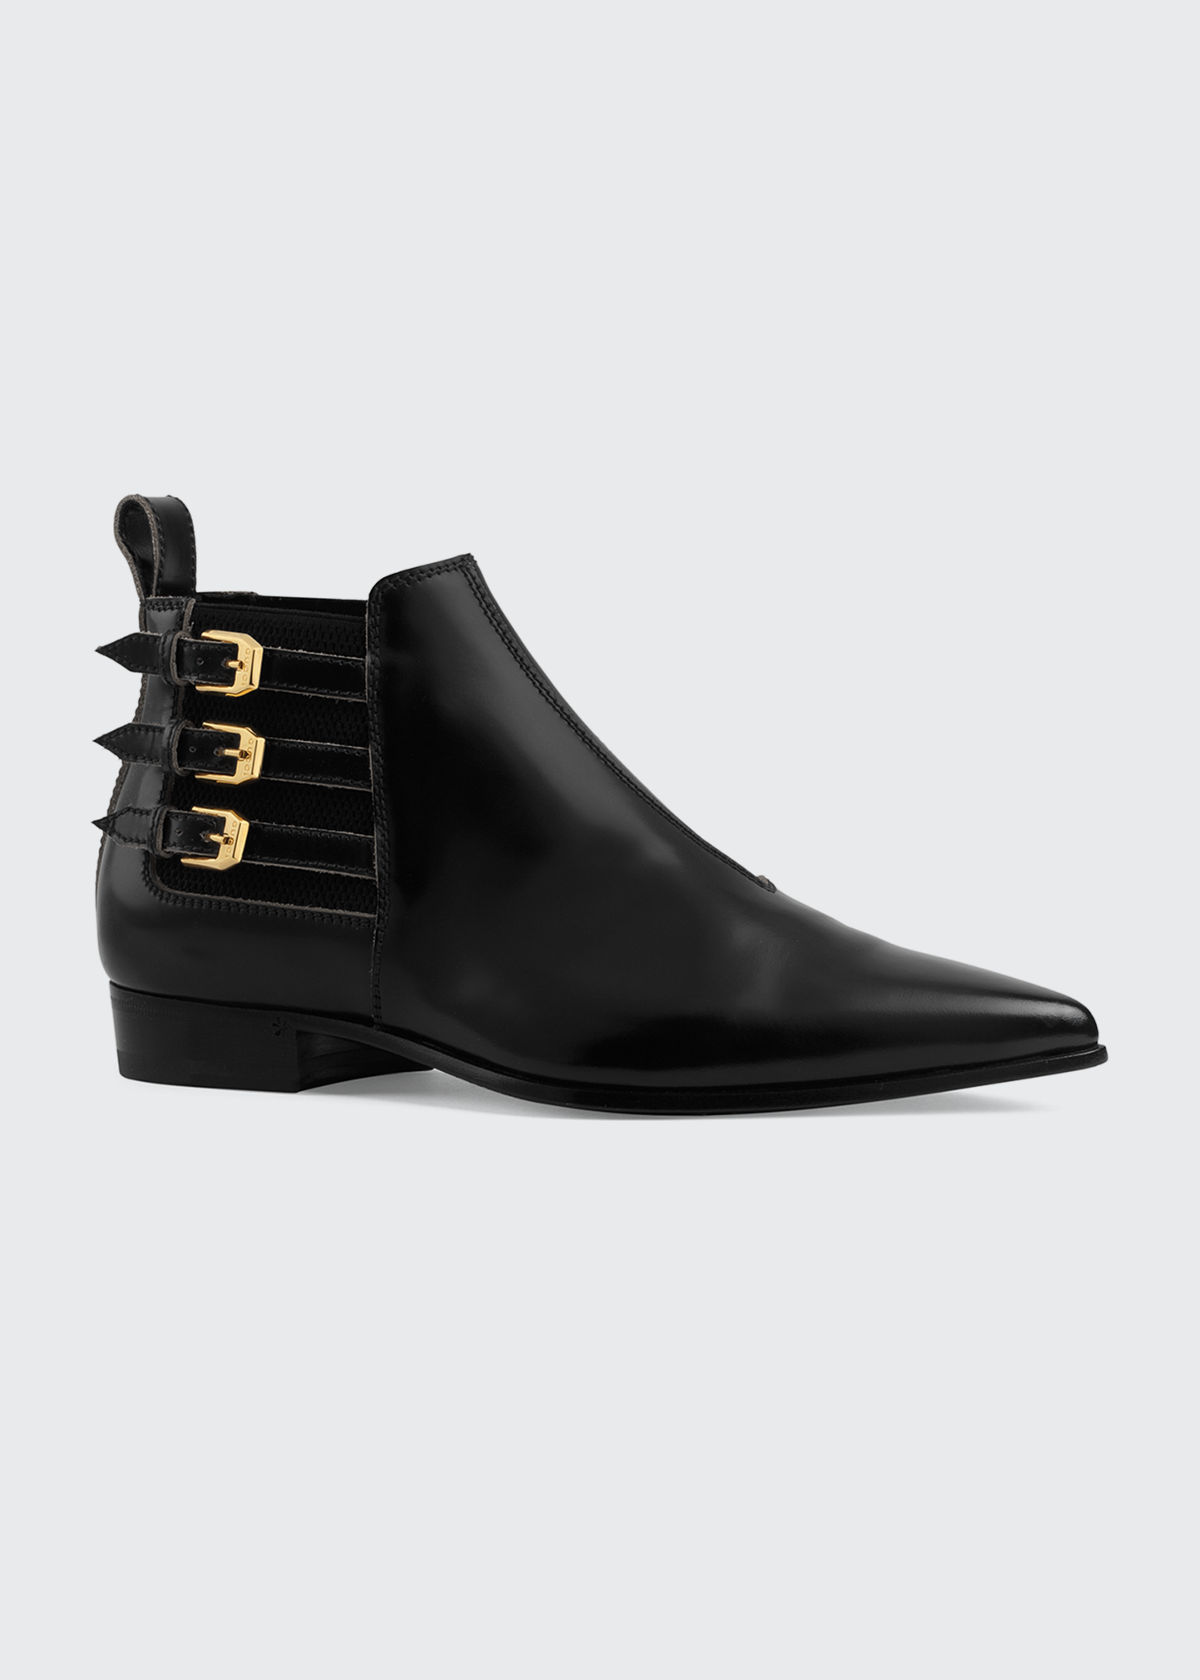 Gucci Boots QUEBEC 3-BUCKLE BOOTIES WITH ELASTIC